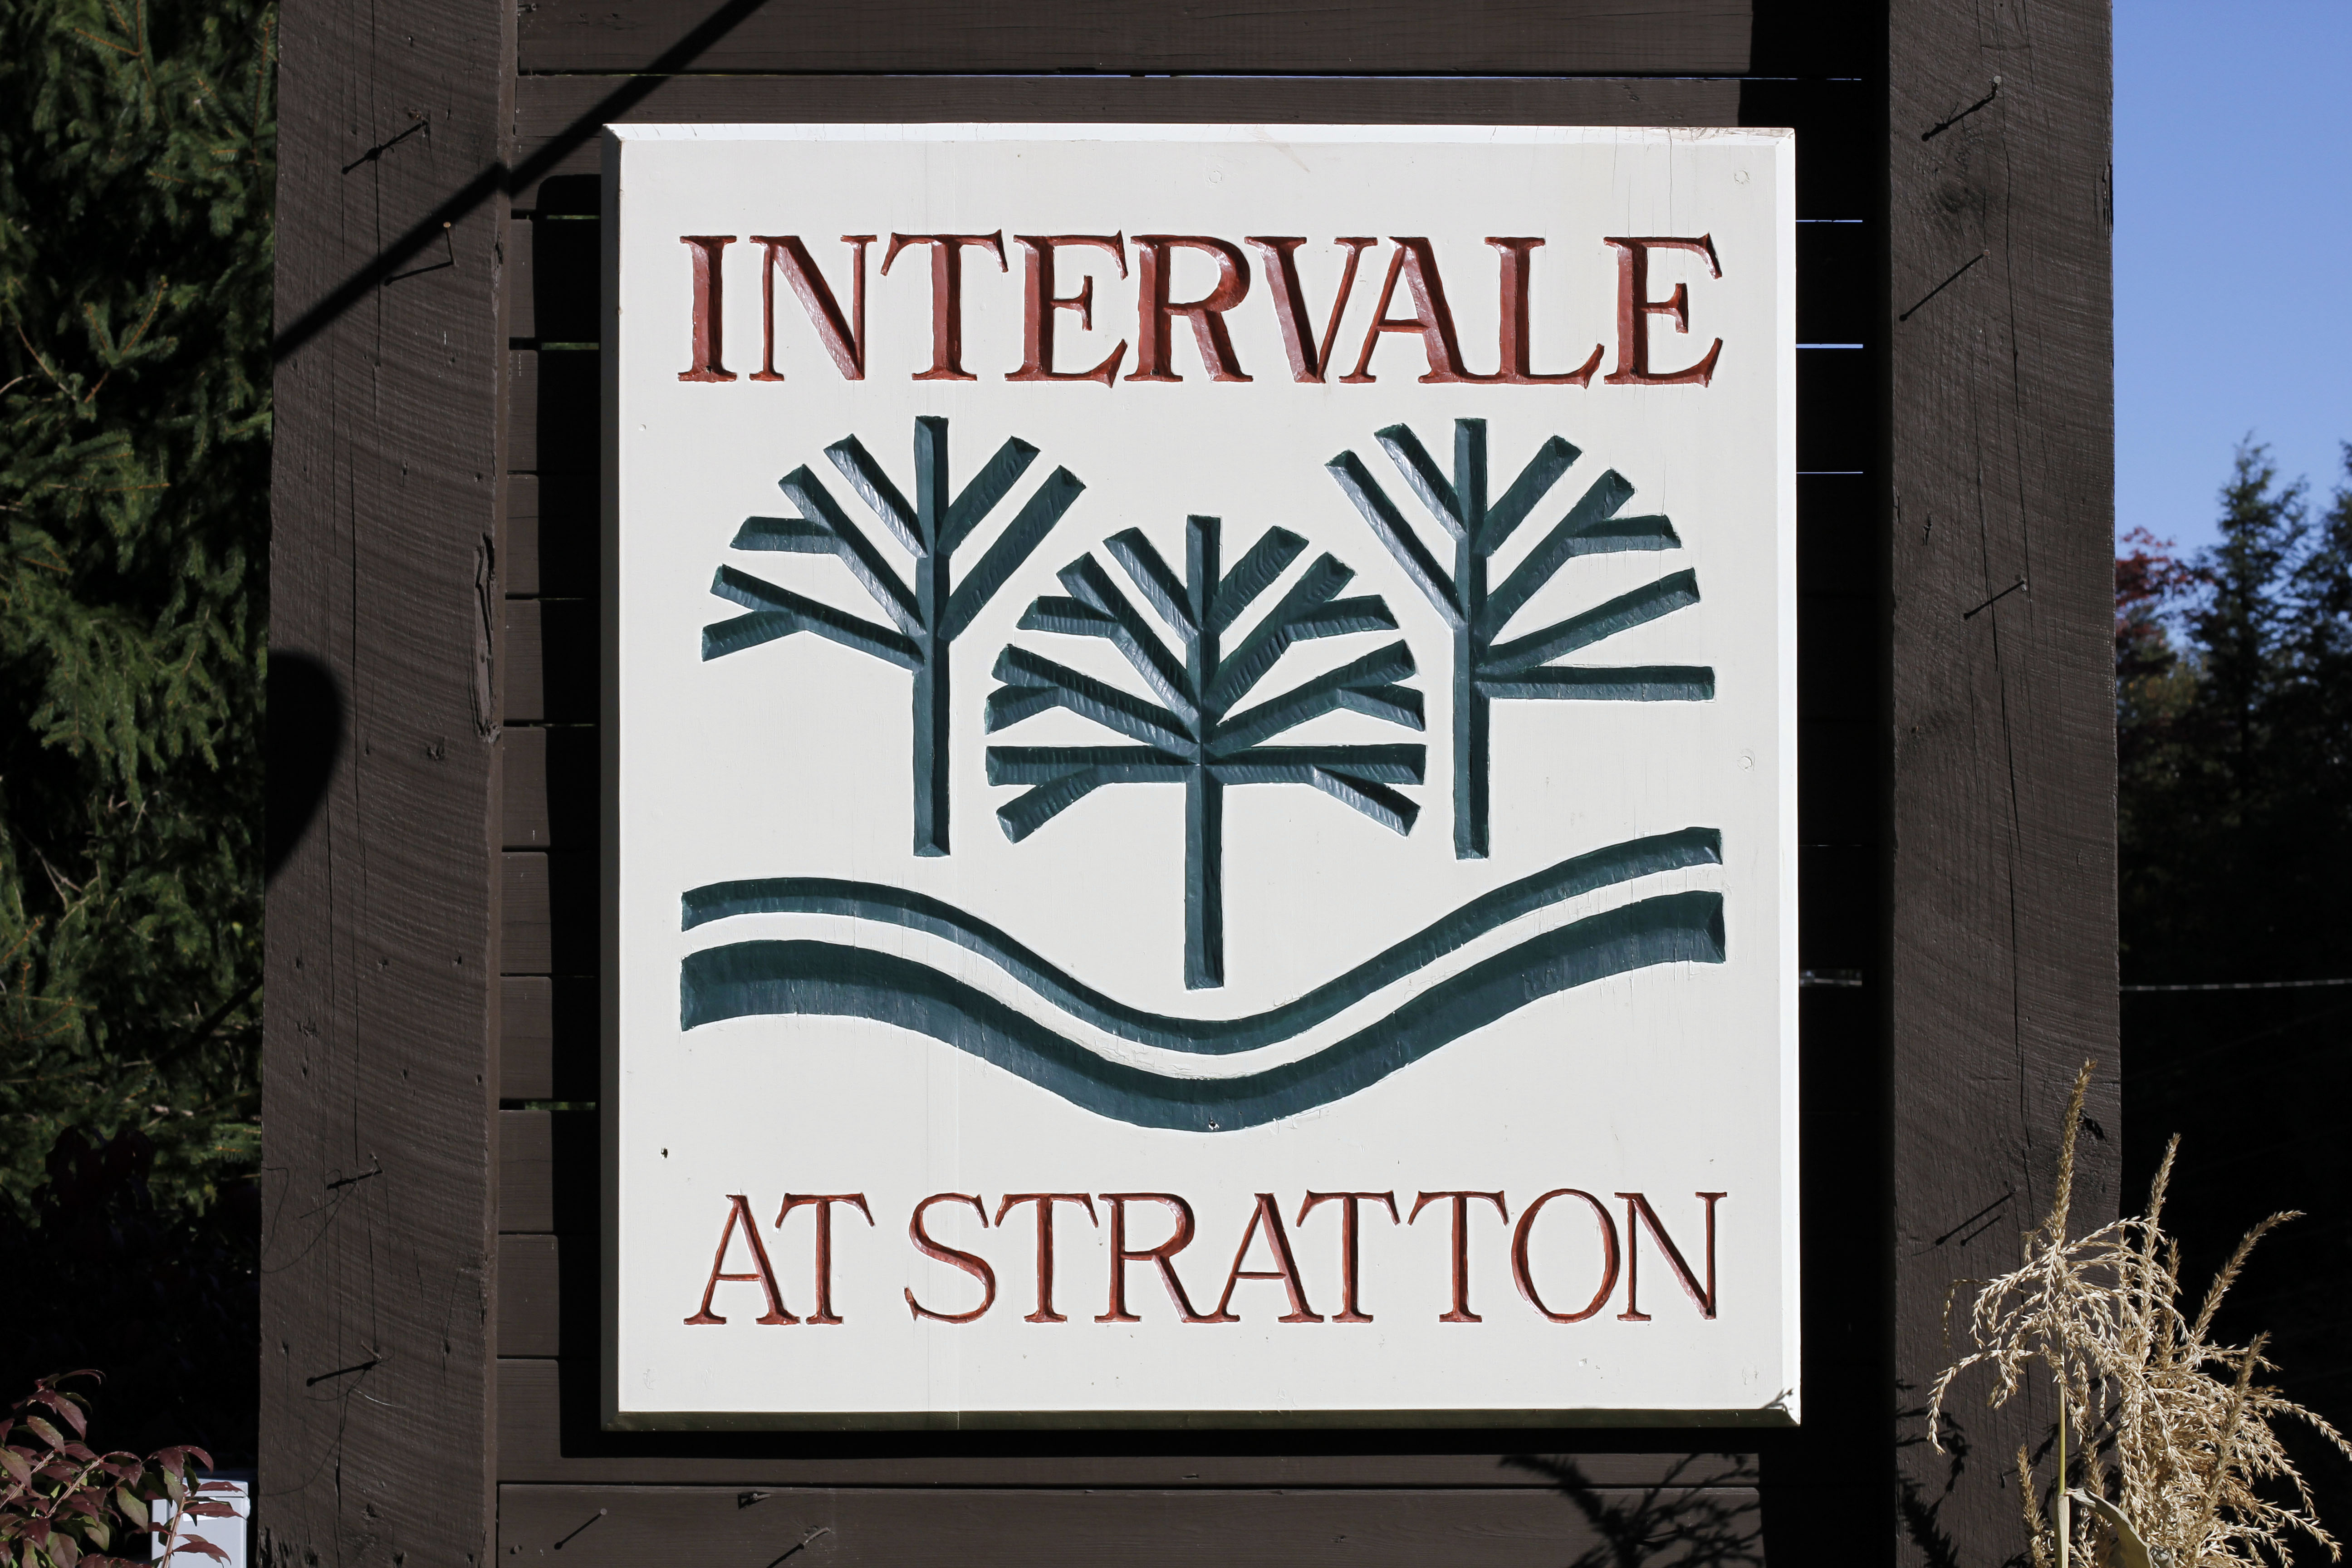 Property Of Stratton's Intervale